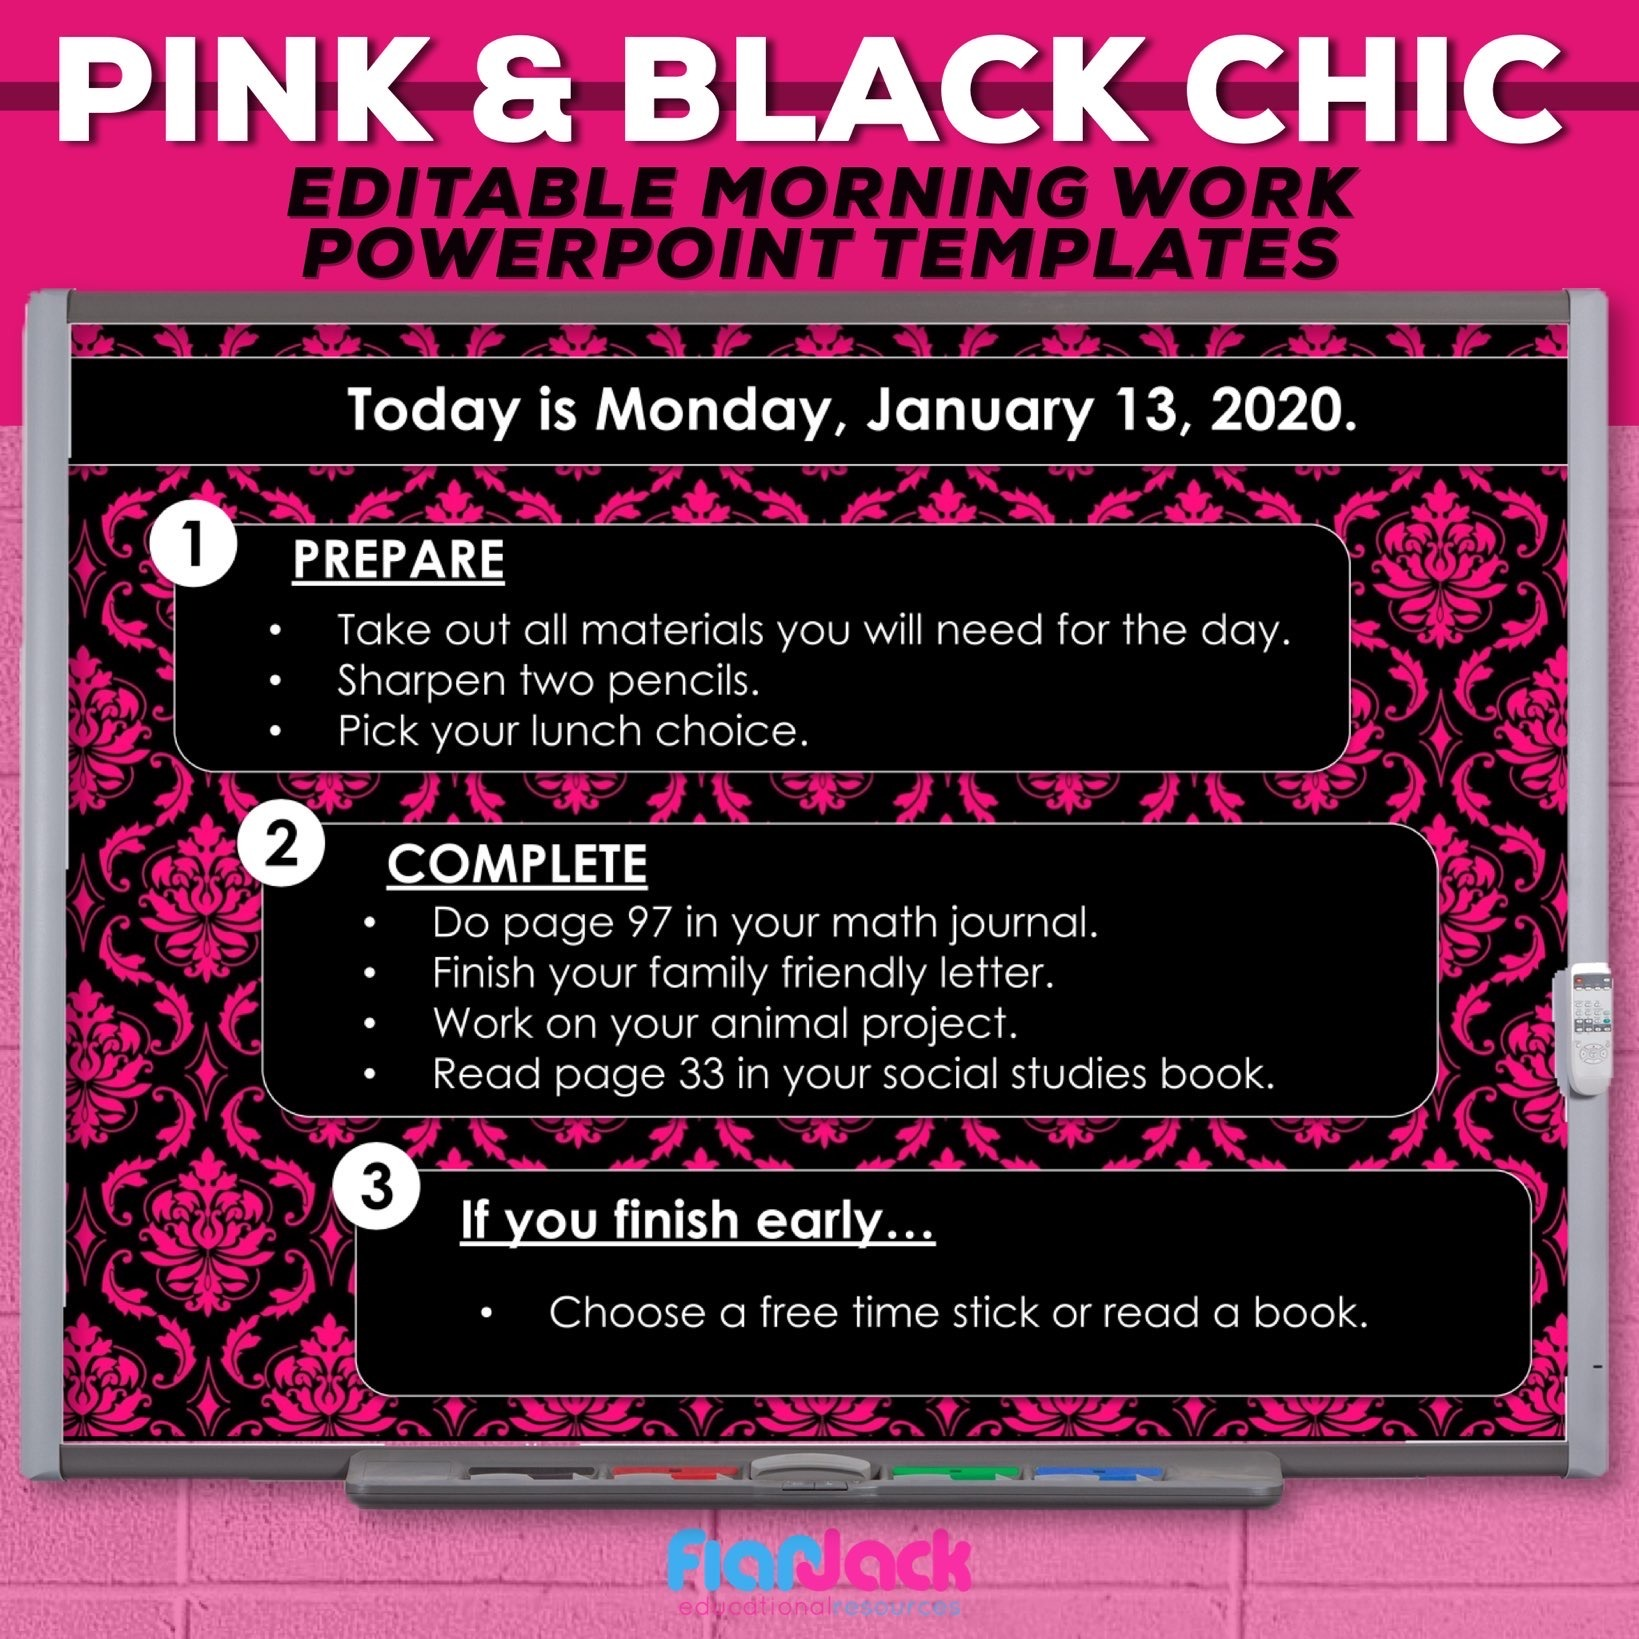 Editable PowerPoint Templates | Pink and Black